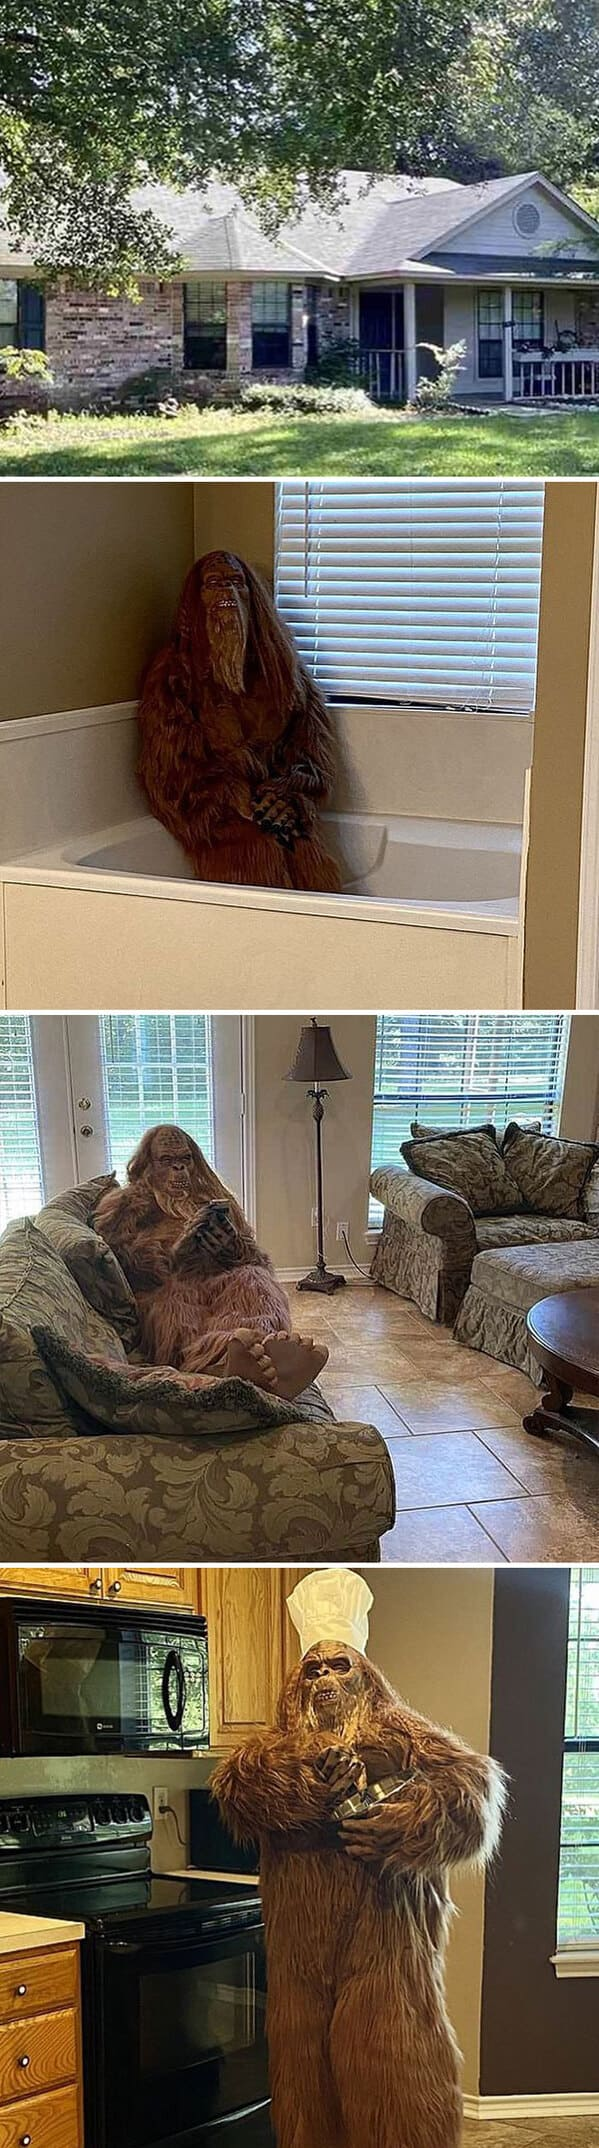 Zillow gone wild, weird and funny real estate listings, real estate agents who did extra, lol, funny pics of houses, ridiculous houses to buy, zillowgonewild, instagram, humor, funny pics